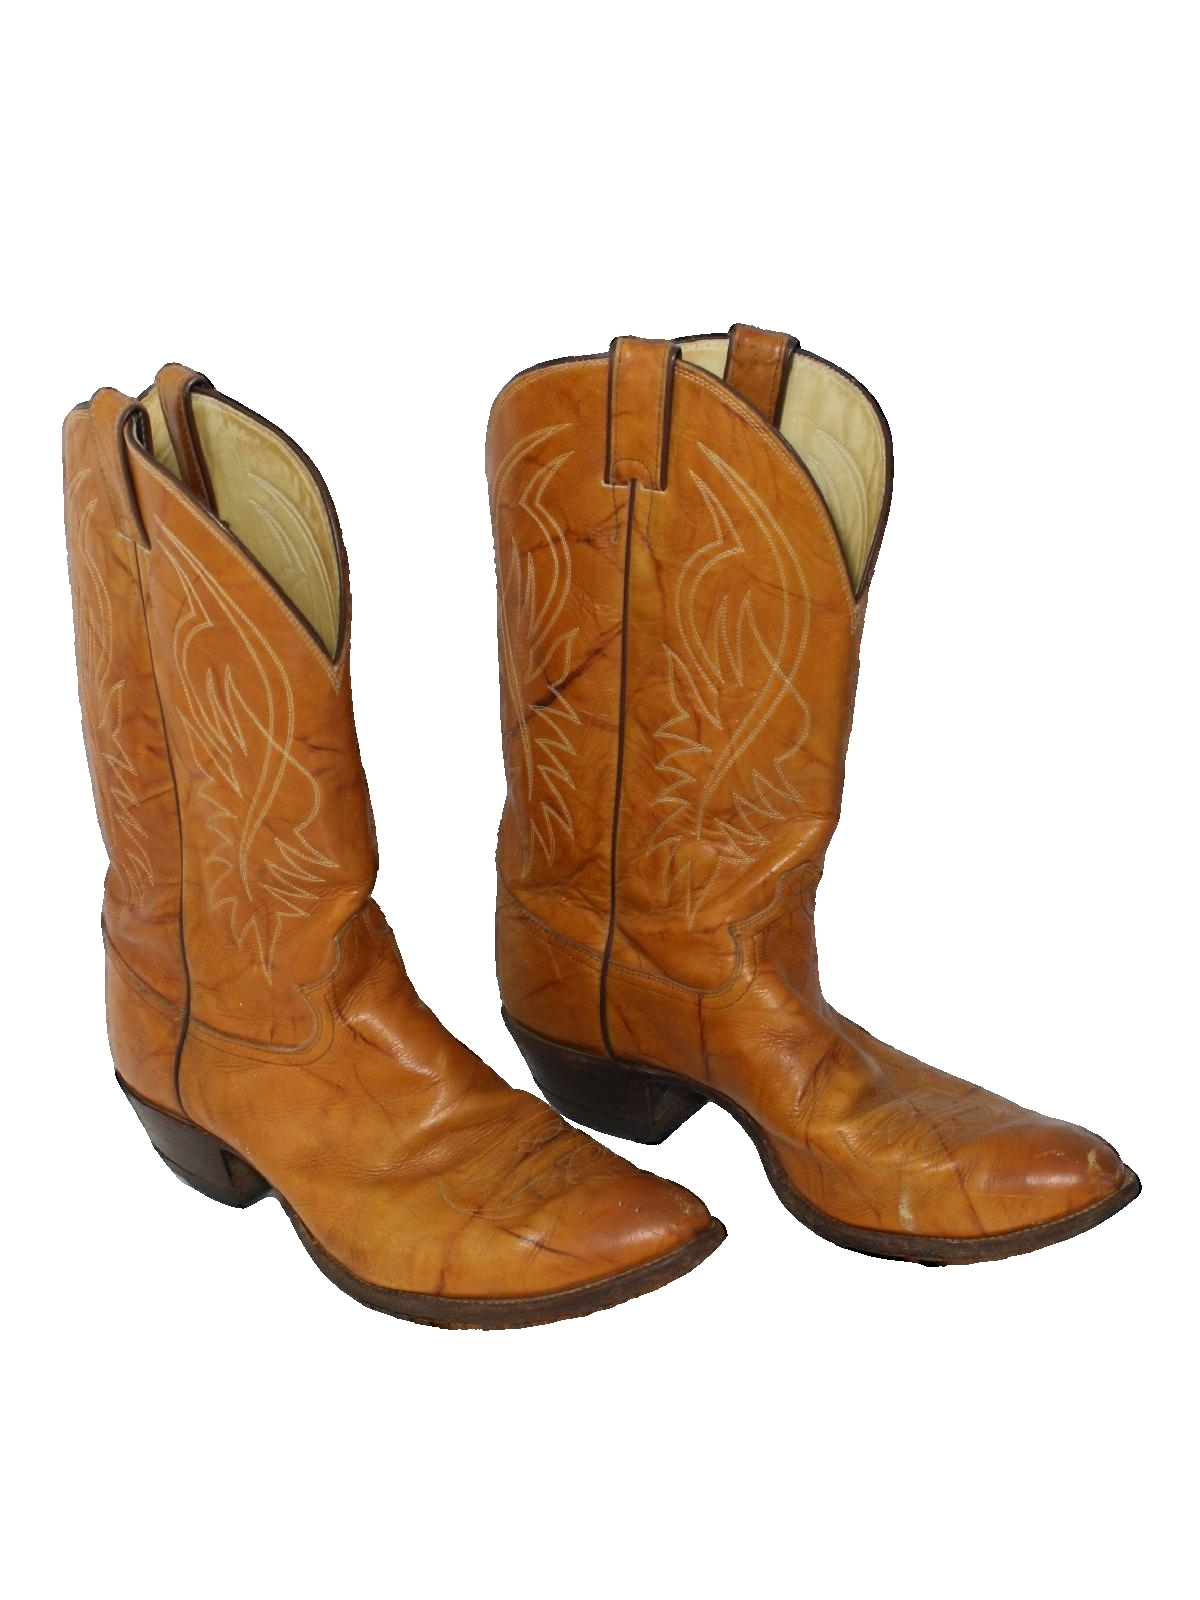 1980\u0027s Justin Made in USA Mens Western Boots Shoes